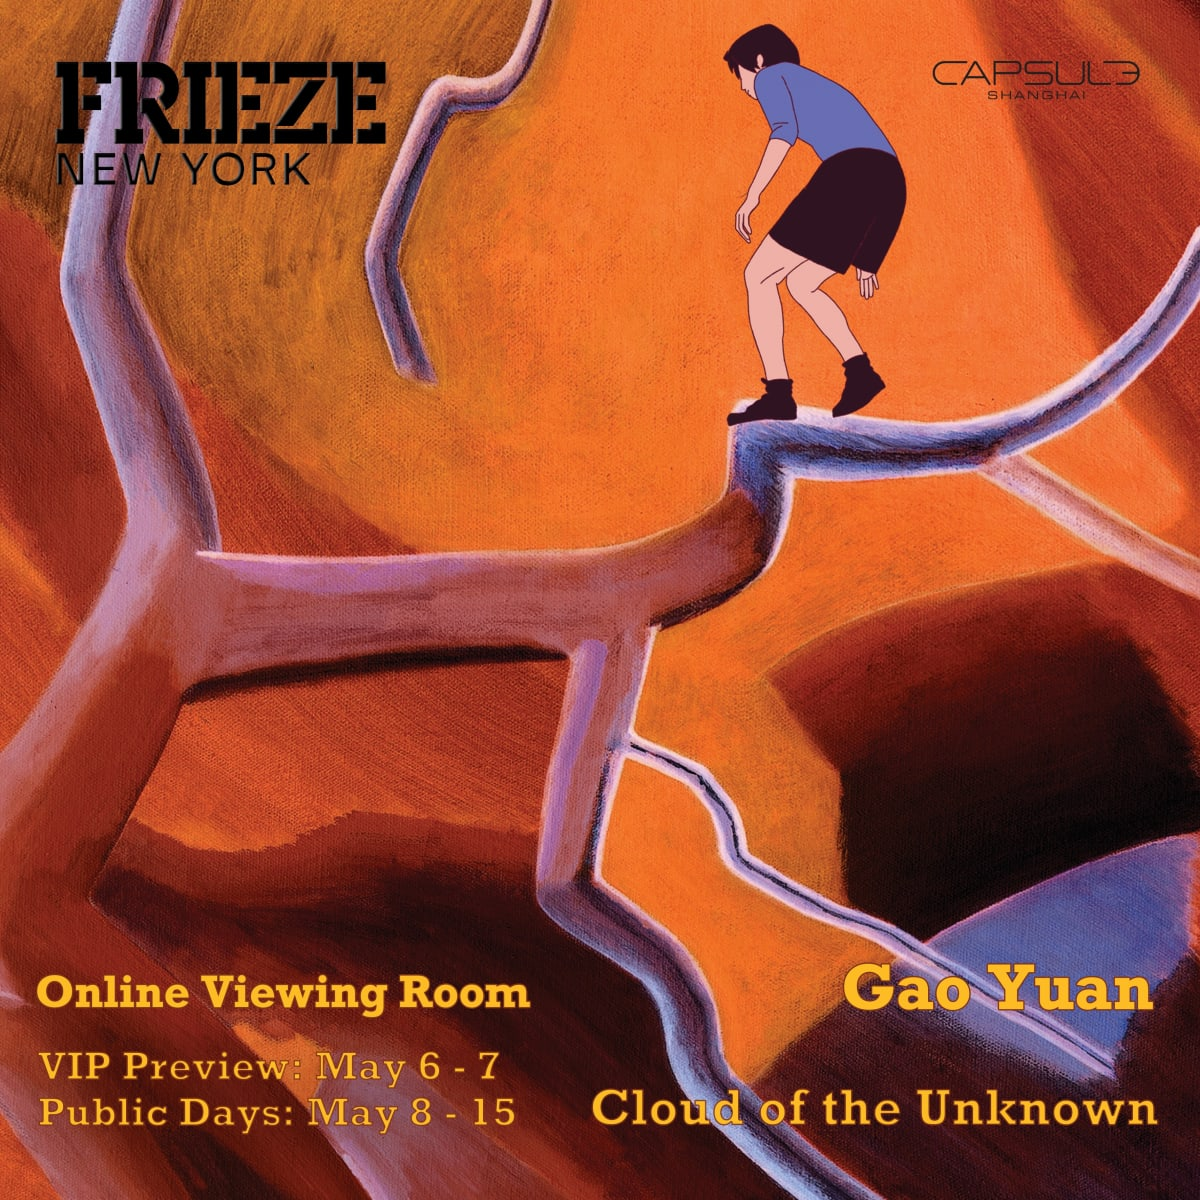 Frieze New York 2020 | Online Viewing Room